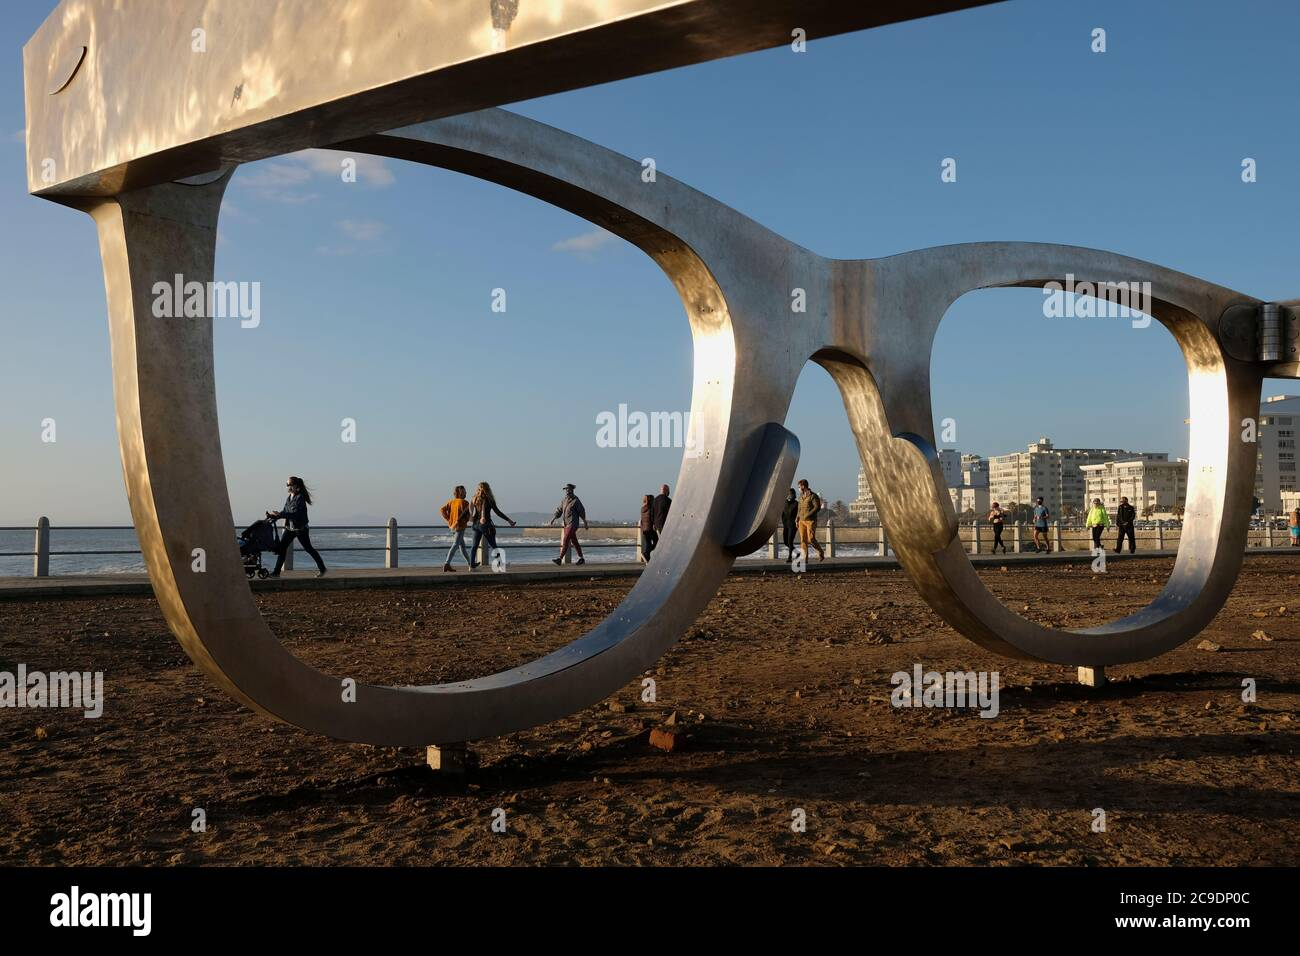 Everyday life on the promenade with Michael Elion's Madiba (Nelson Mandela) inspired public sculpture 'Perceiving Freedom' in Sea Point, Cape Town. Stock Photo